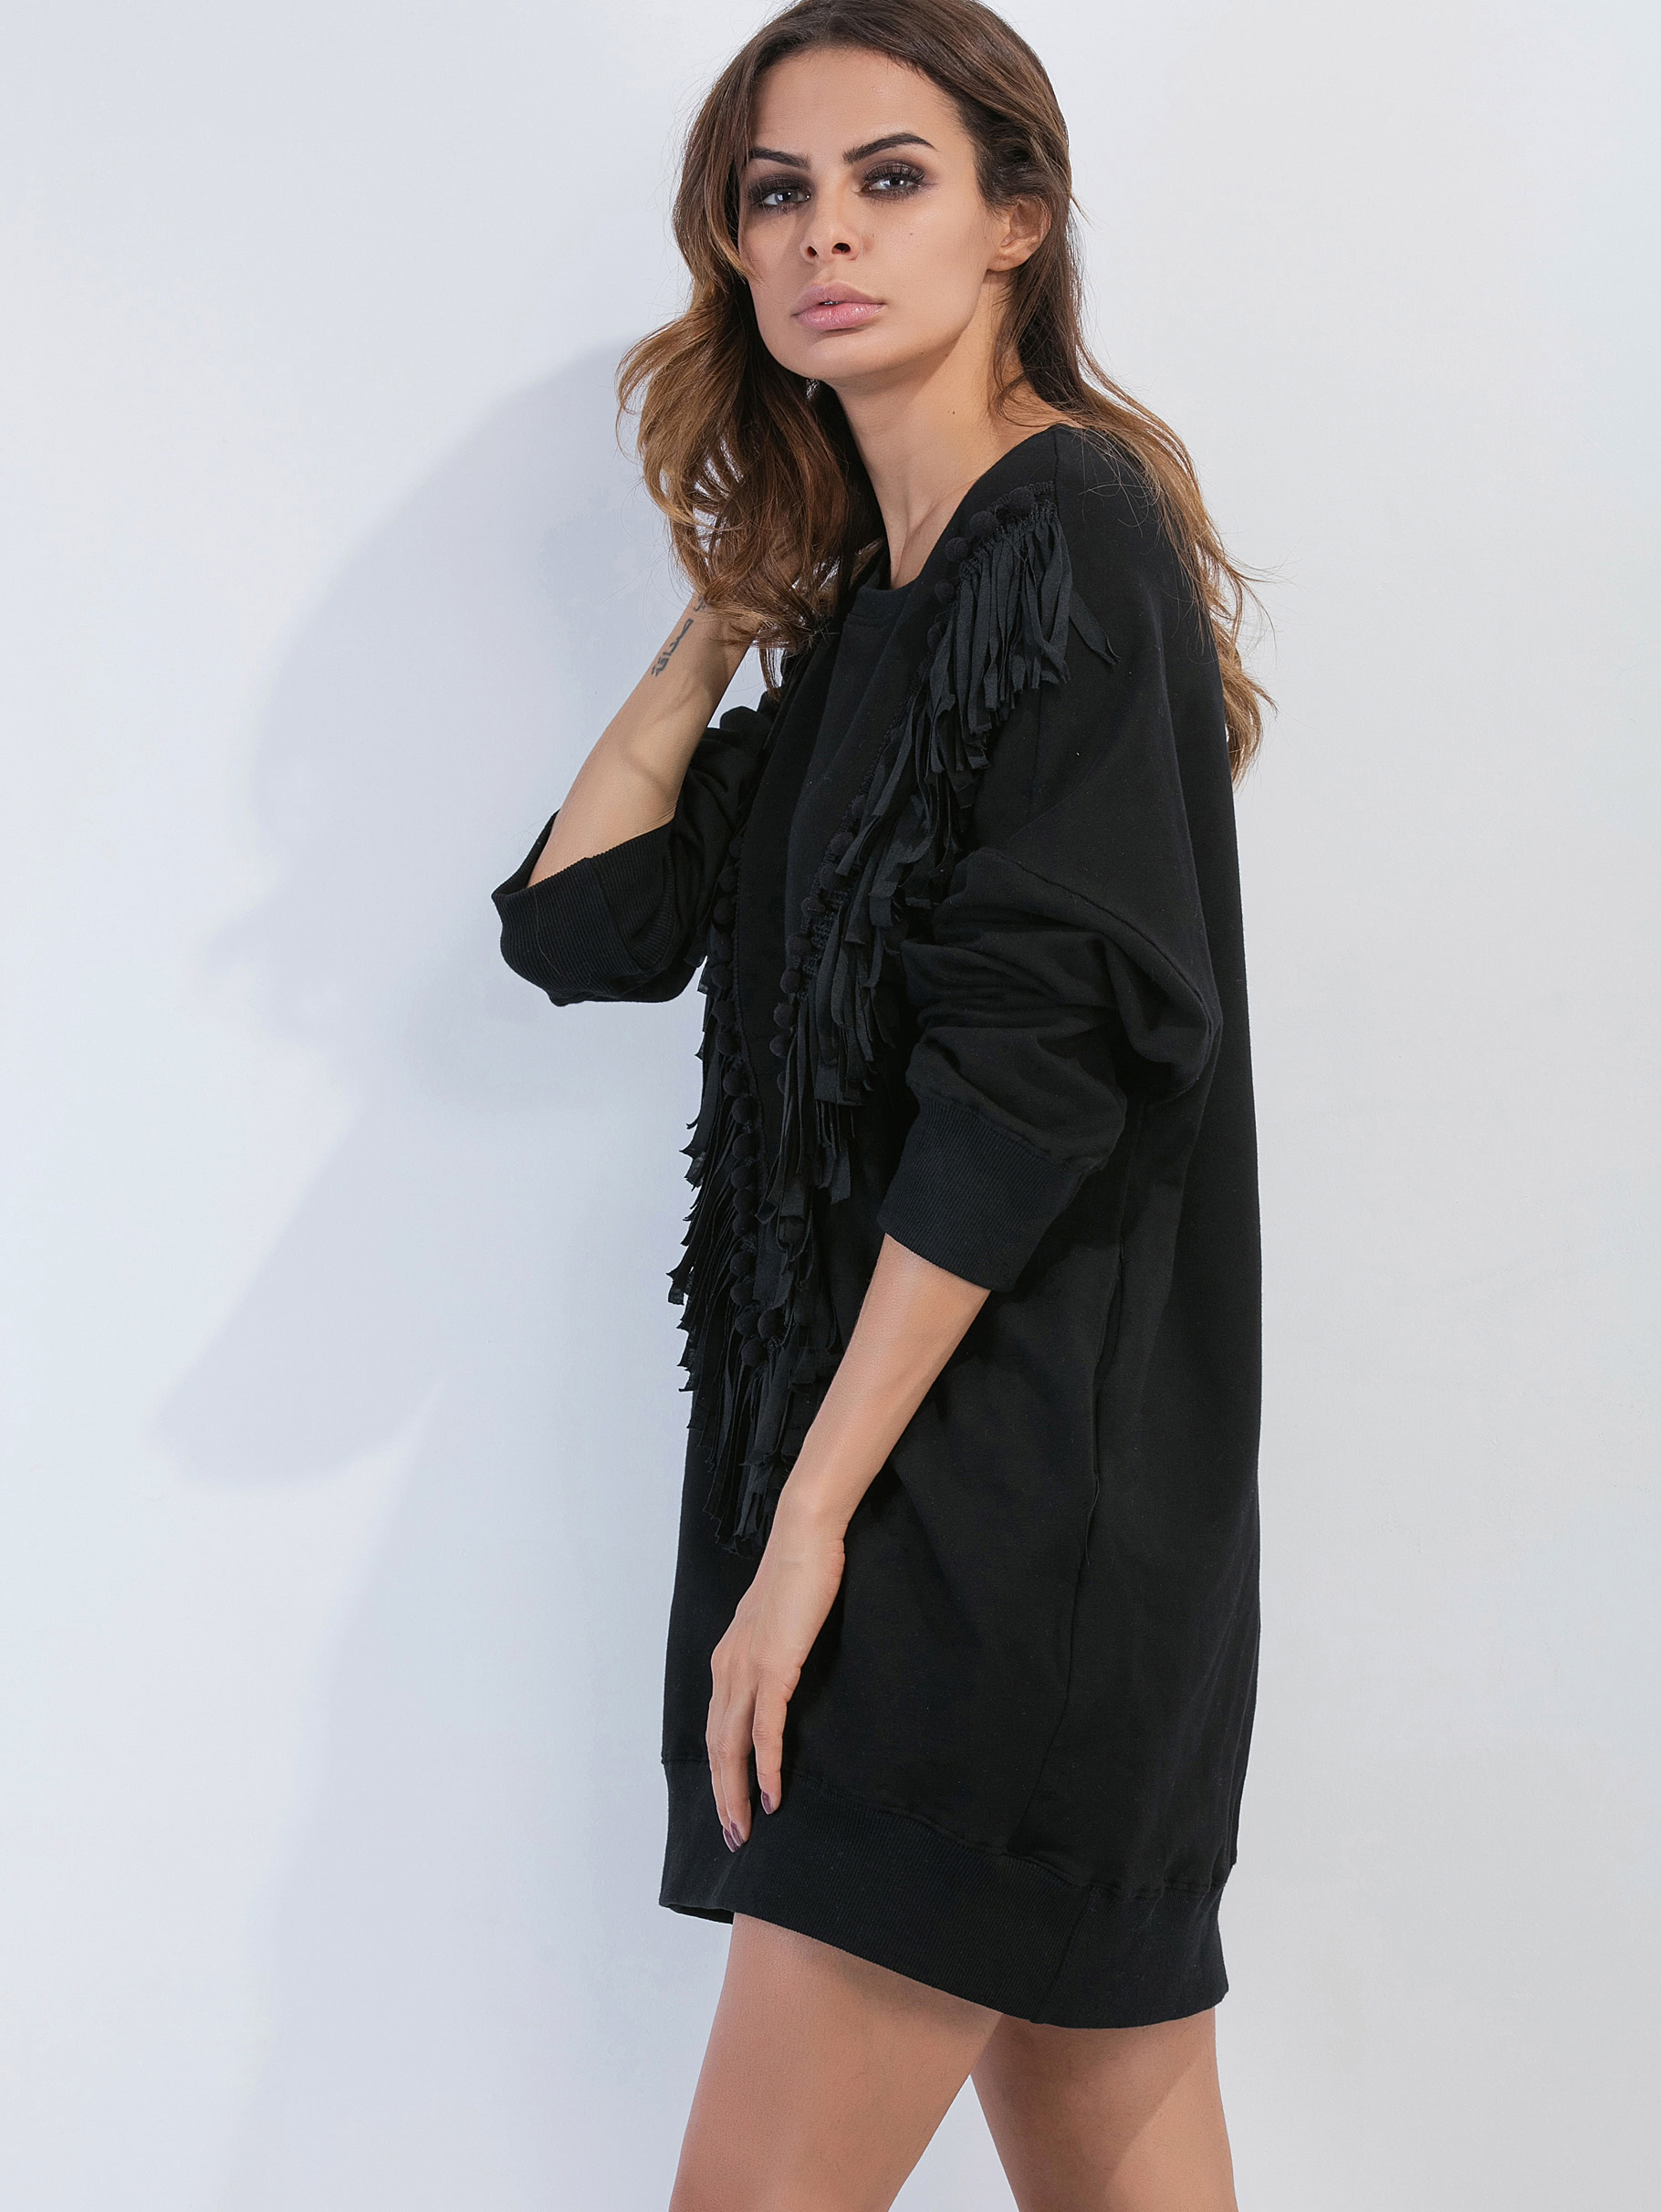 robe sweat shirt avec frange noir french shein sheinside. Black Bedroom Furniture Sets. Home Design Ideas